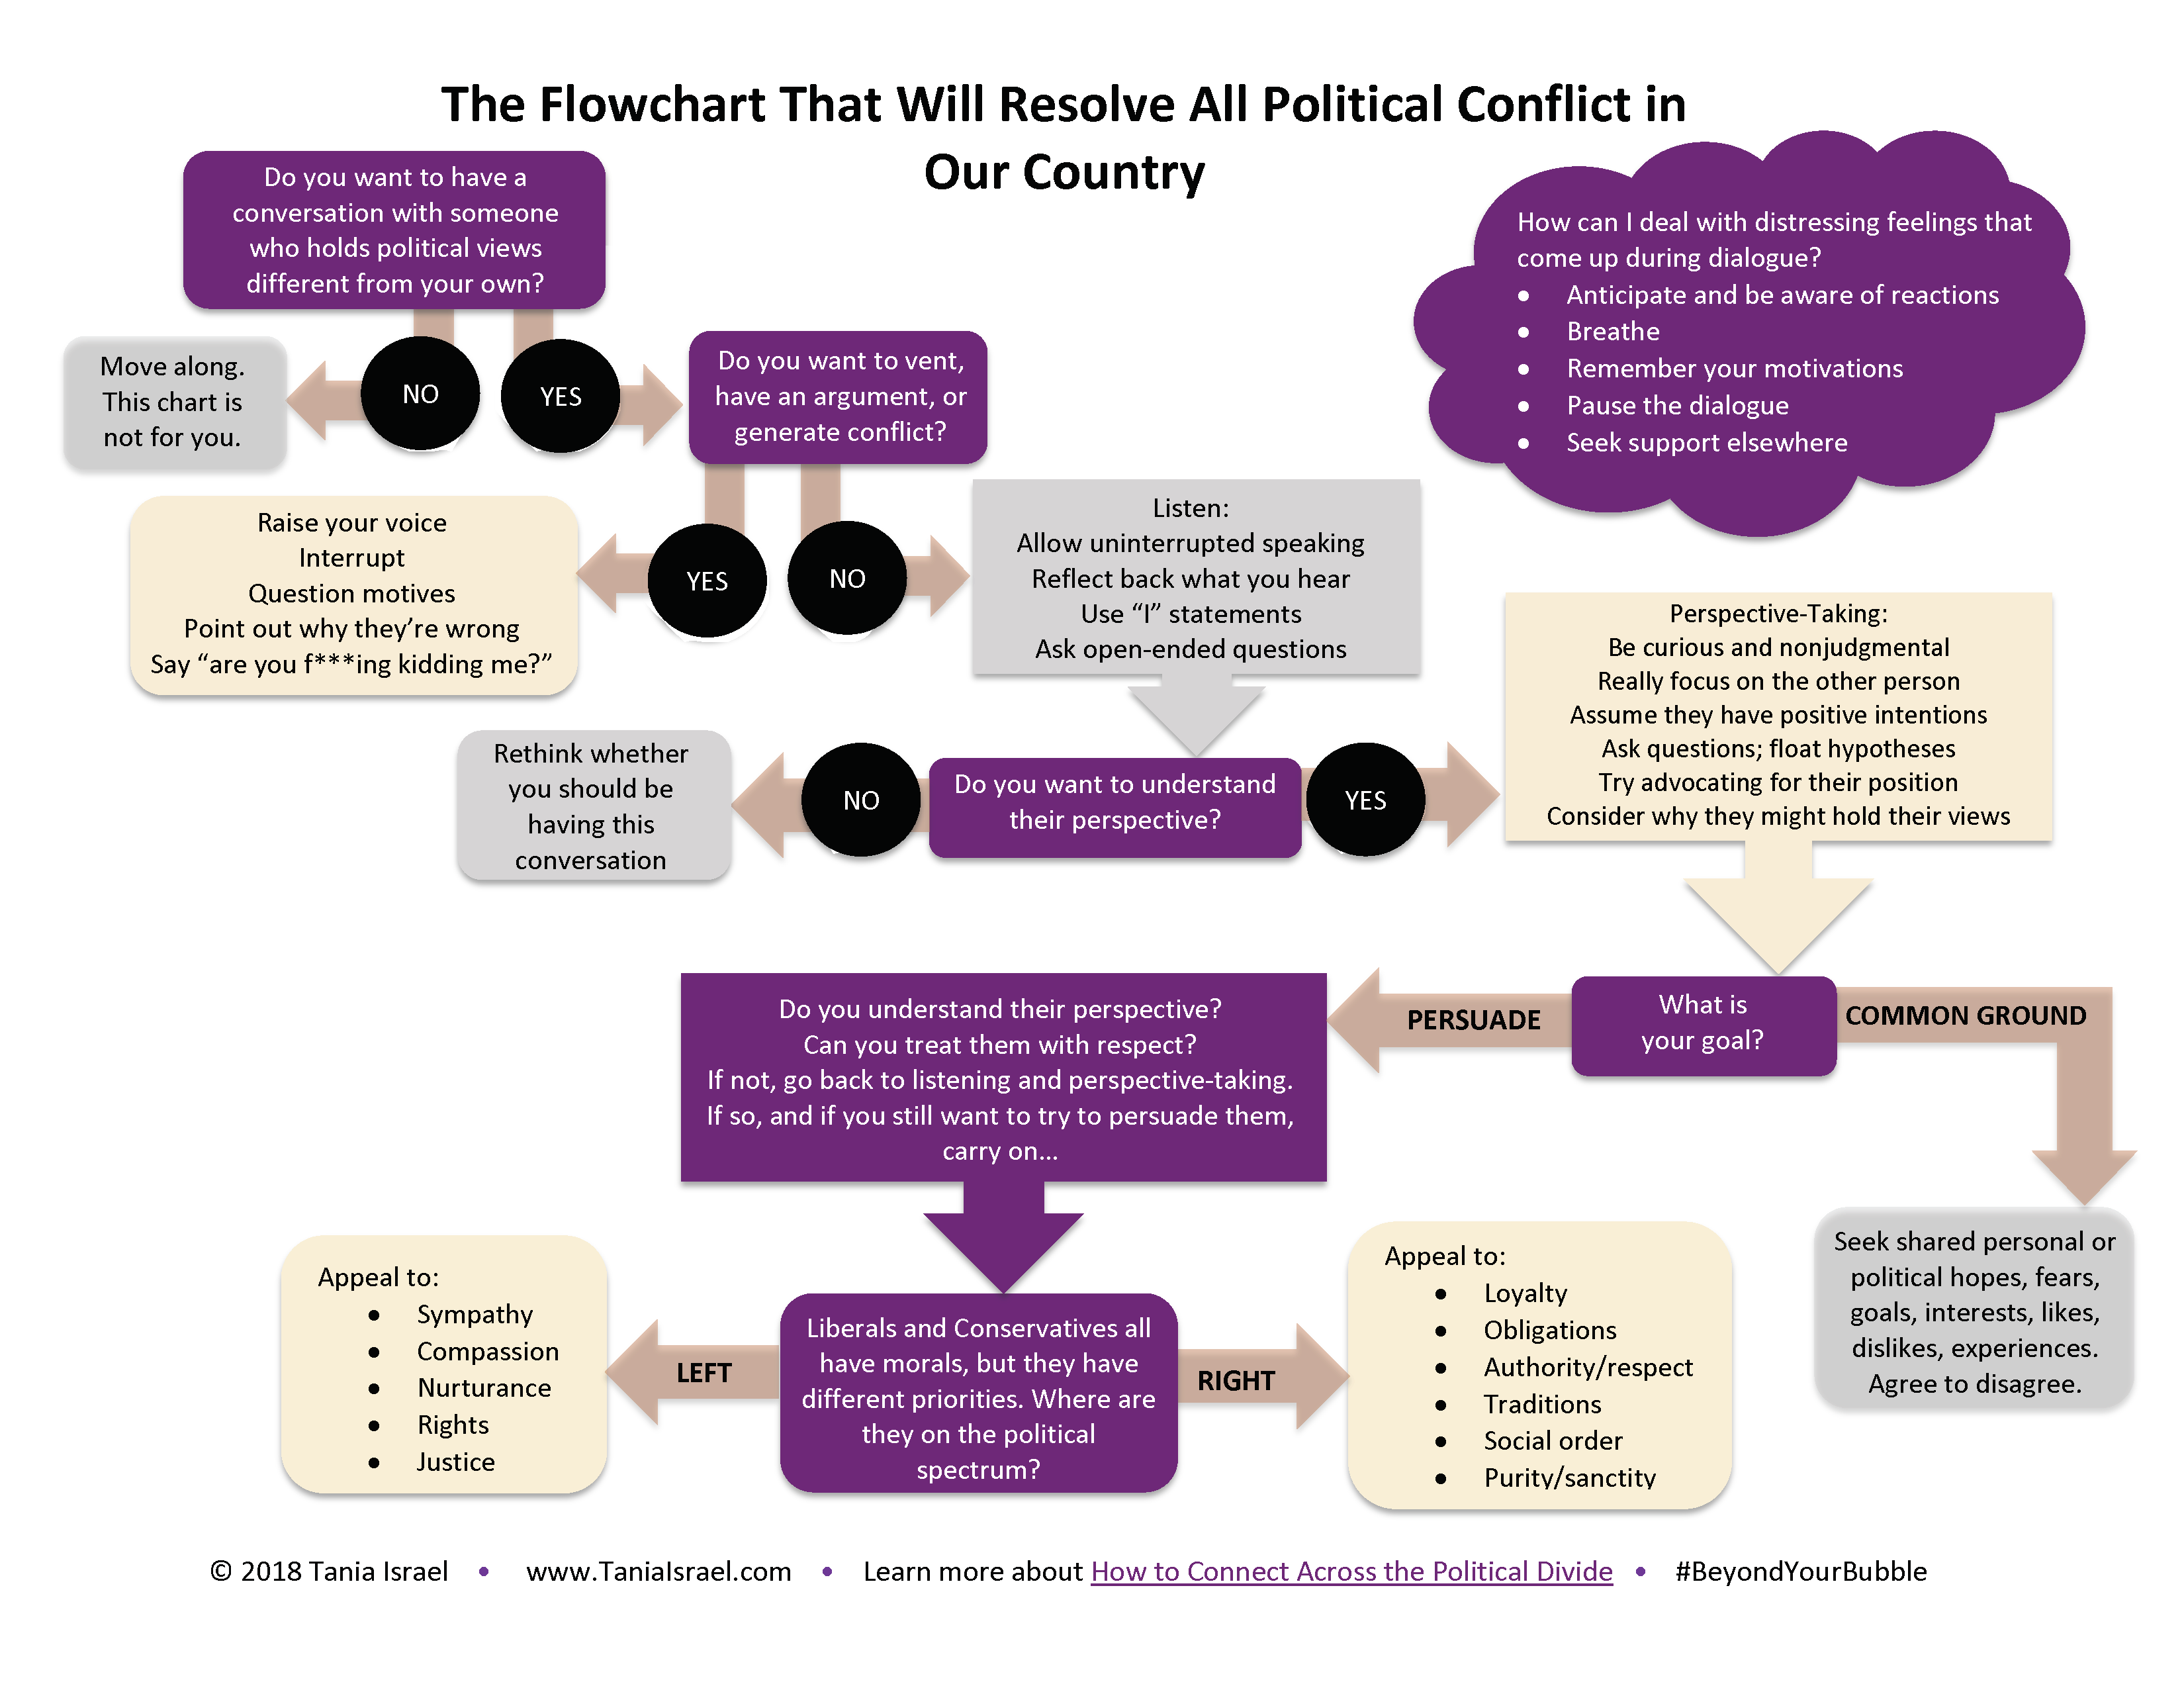 An image of a flowchart that Will Resolve All Political Conflict in Our Country